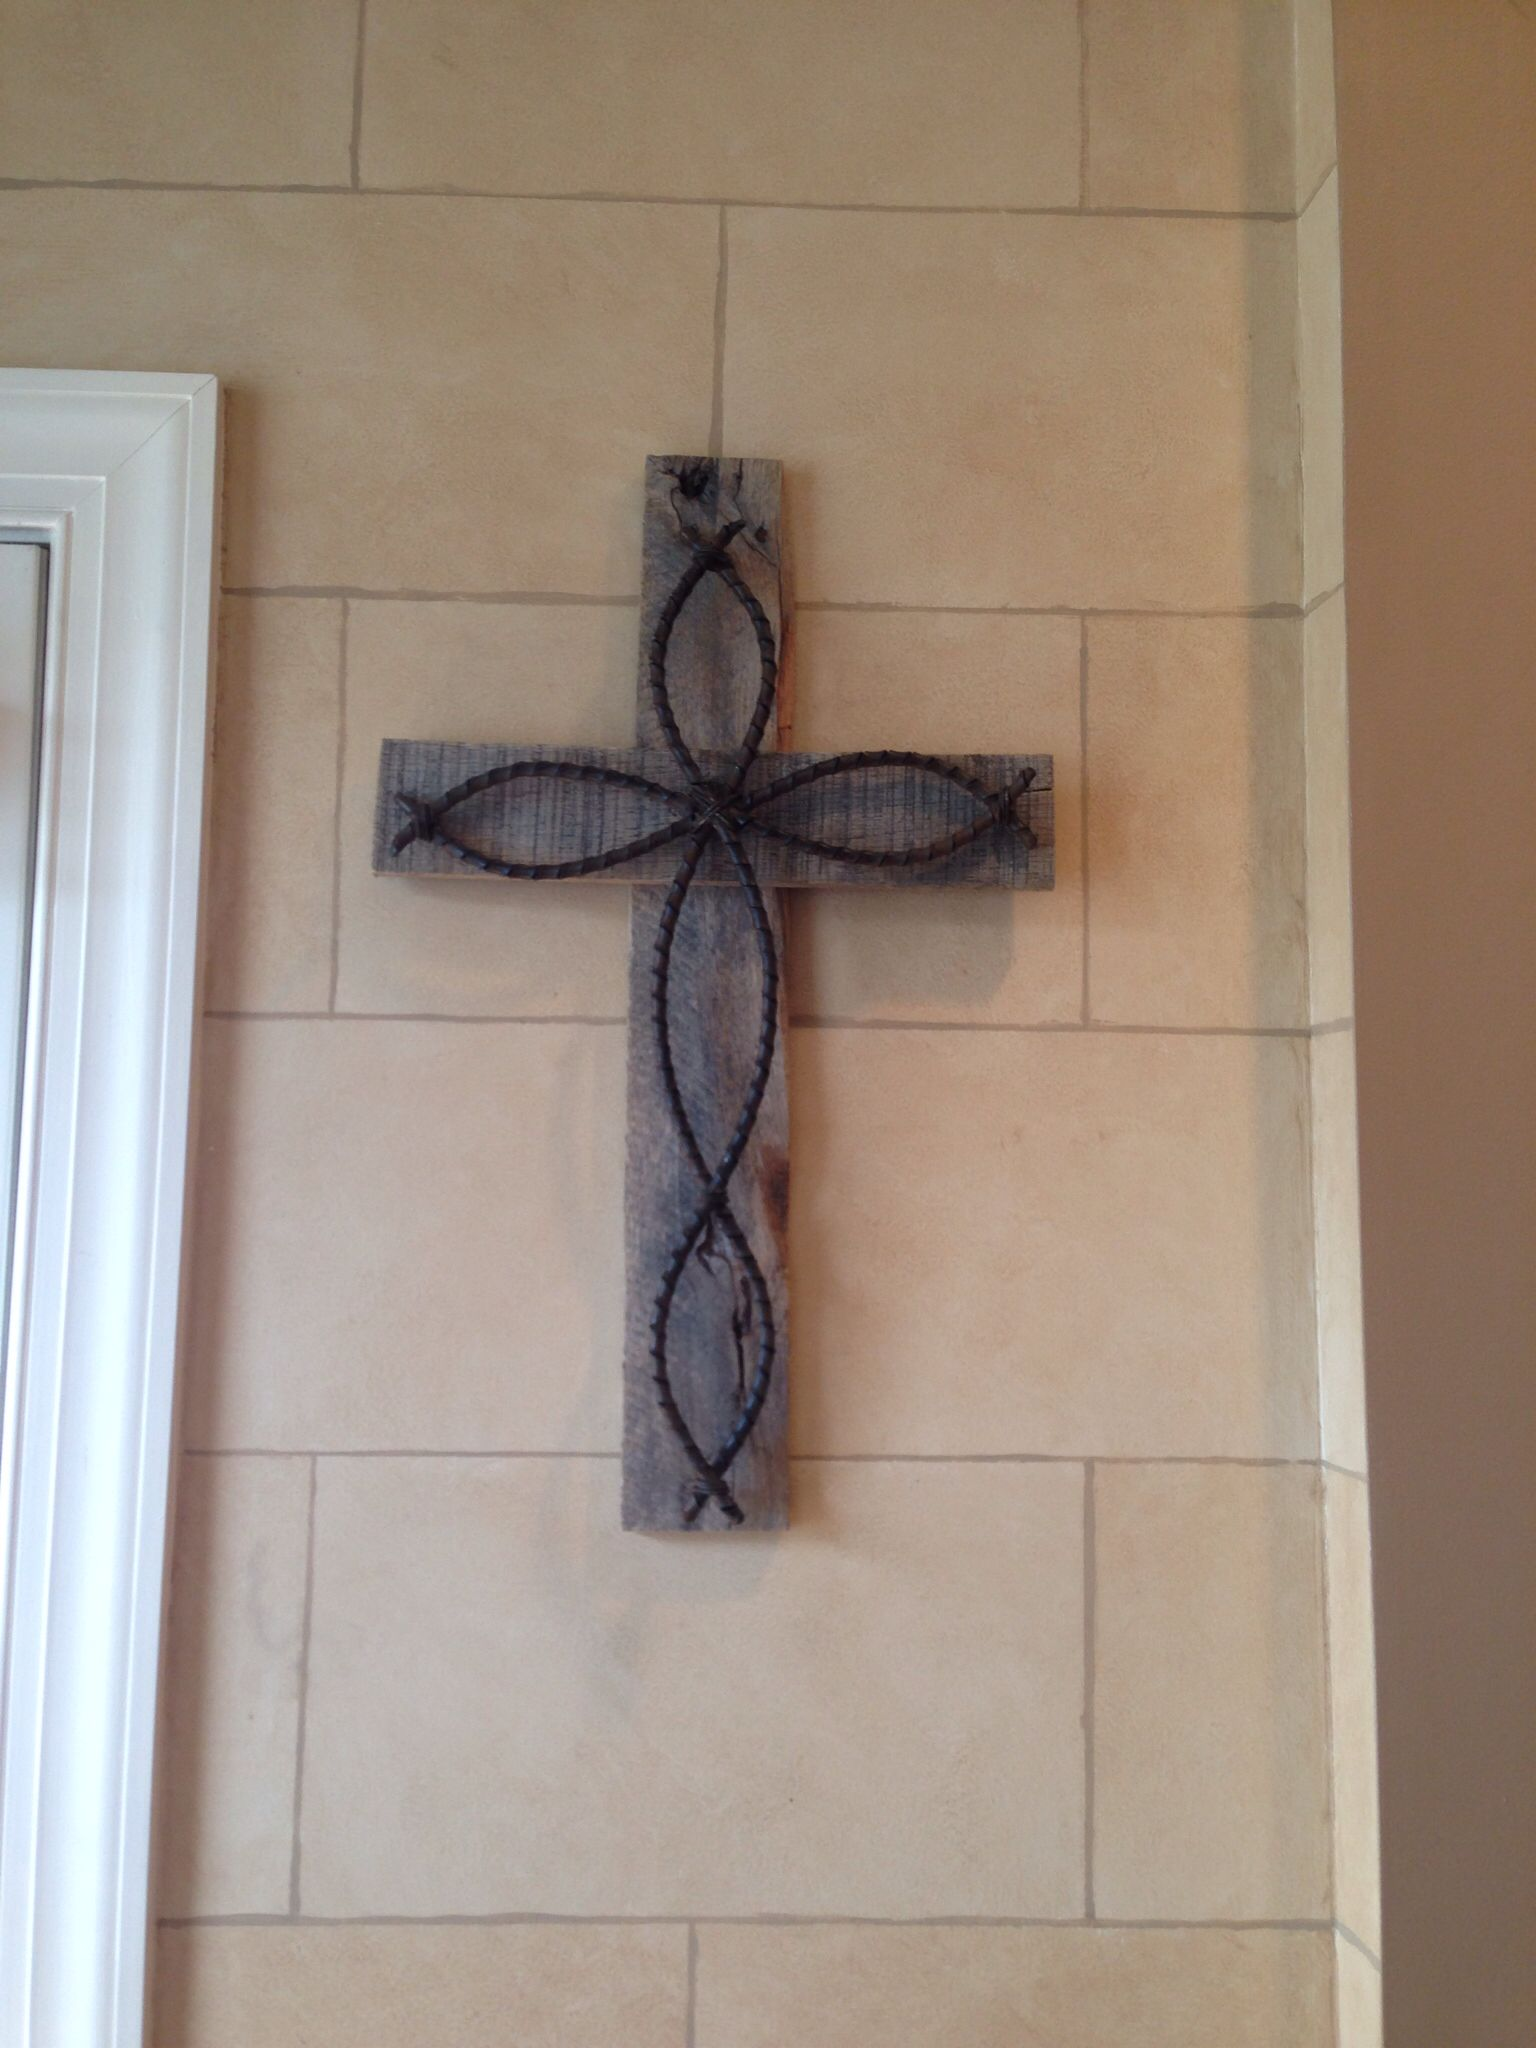 Another fun cross I made for a client!